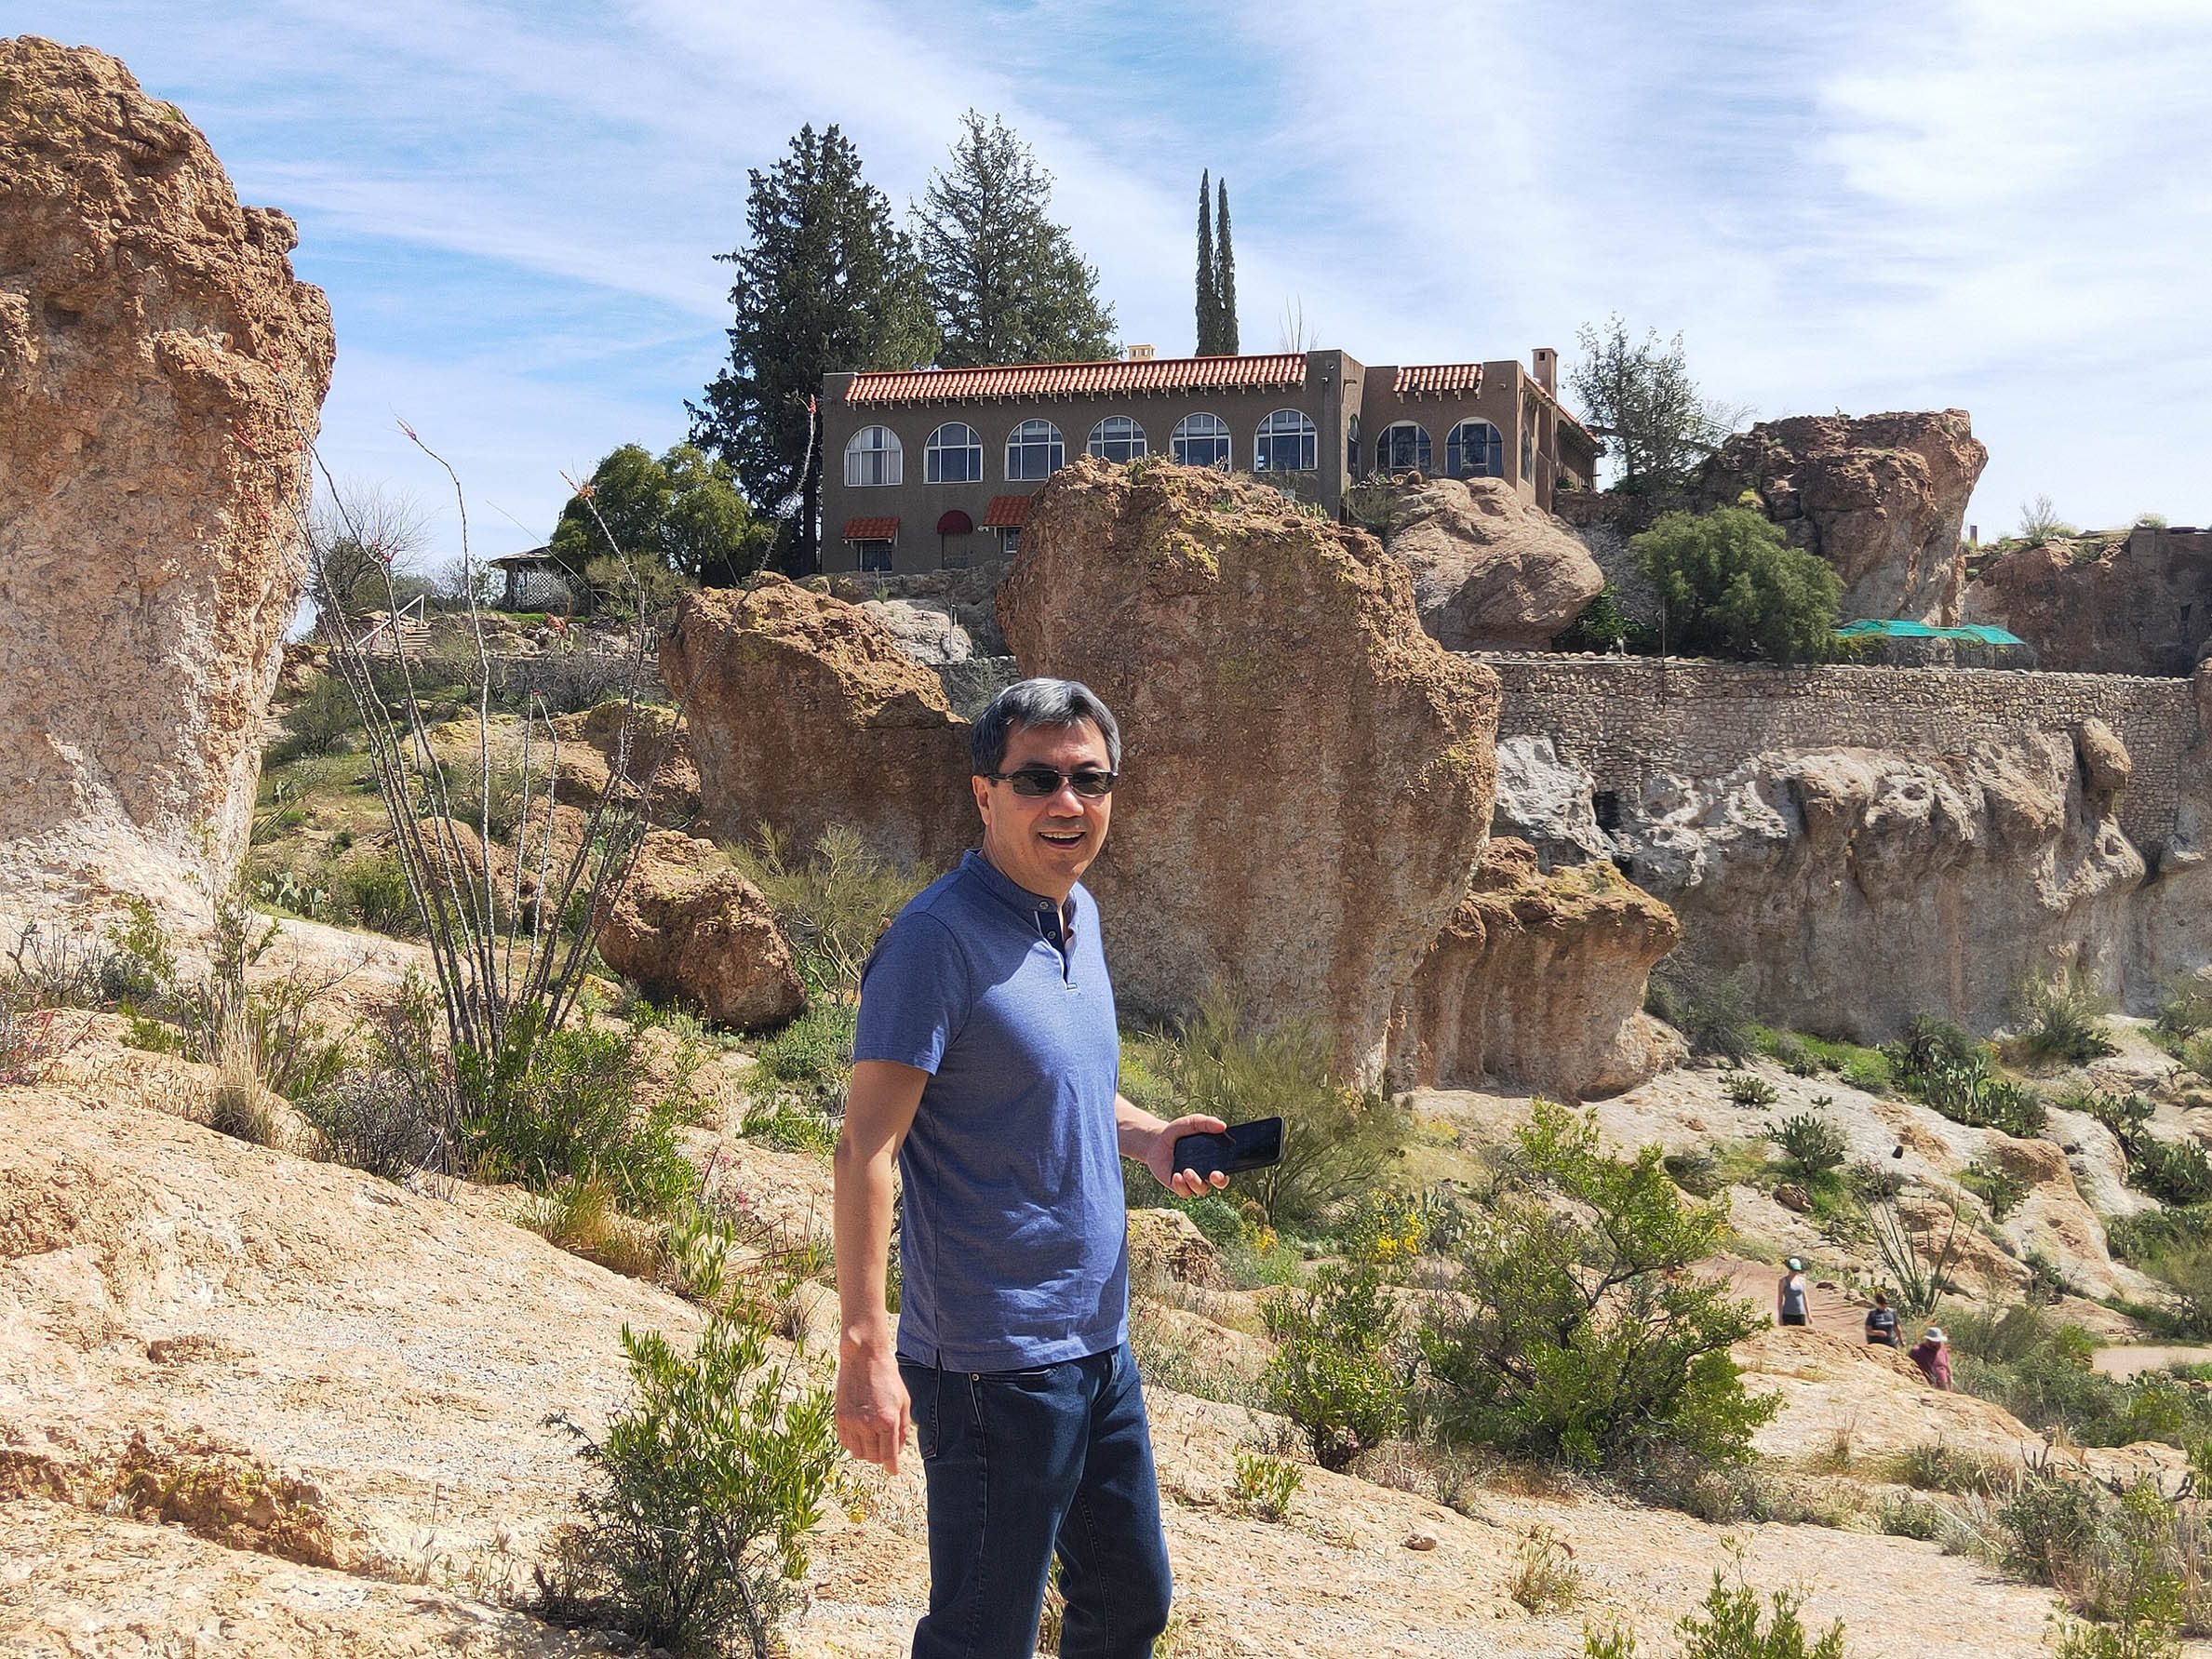 Dirty Labs co-founder Dr. Pete walks in front of rock formations at the Boyce Thompson Arboretum in Arizona.